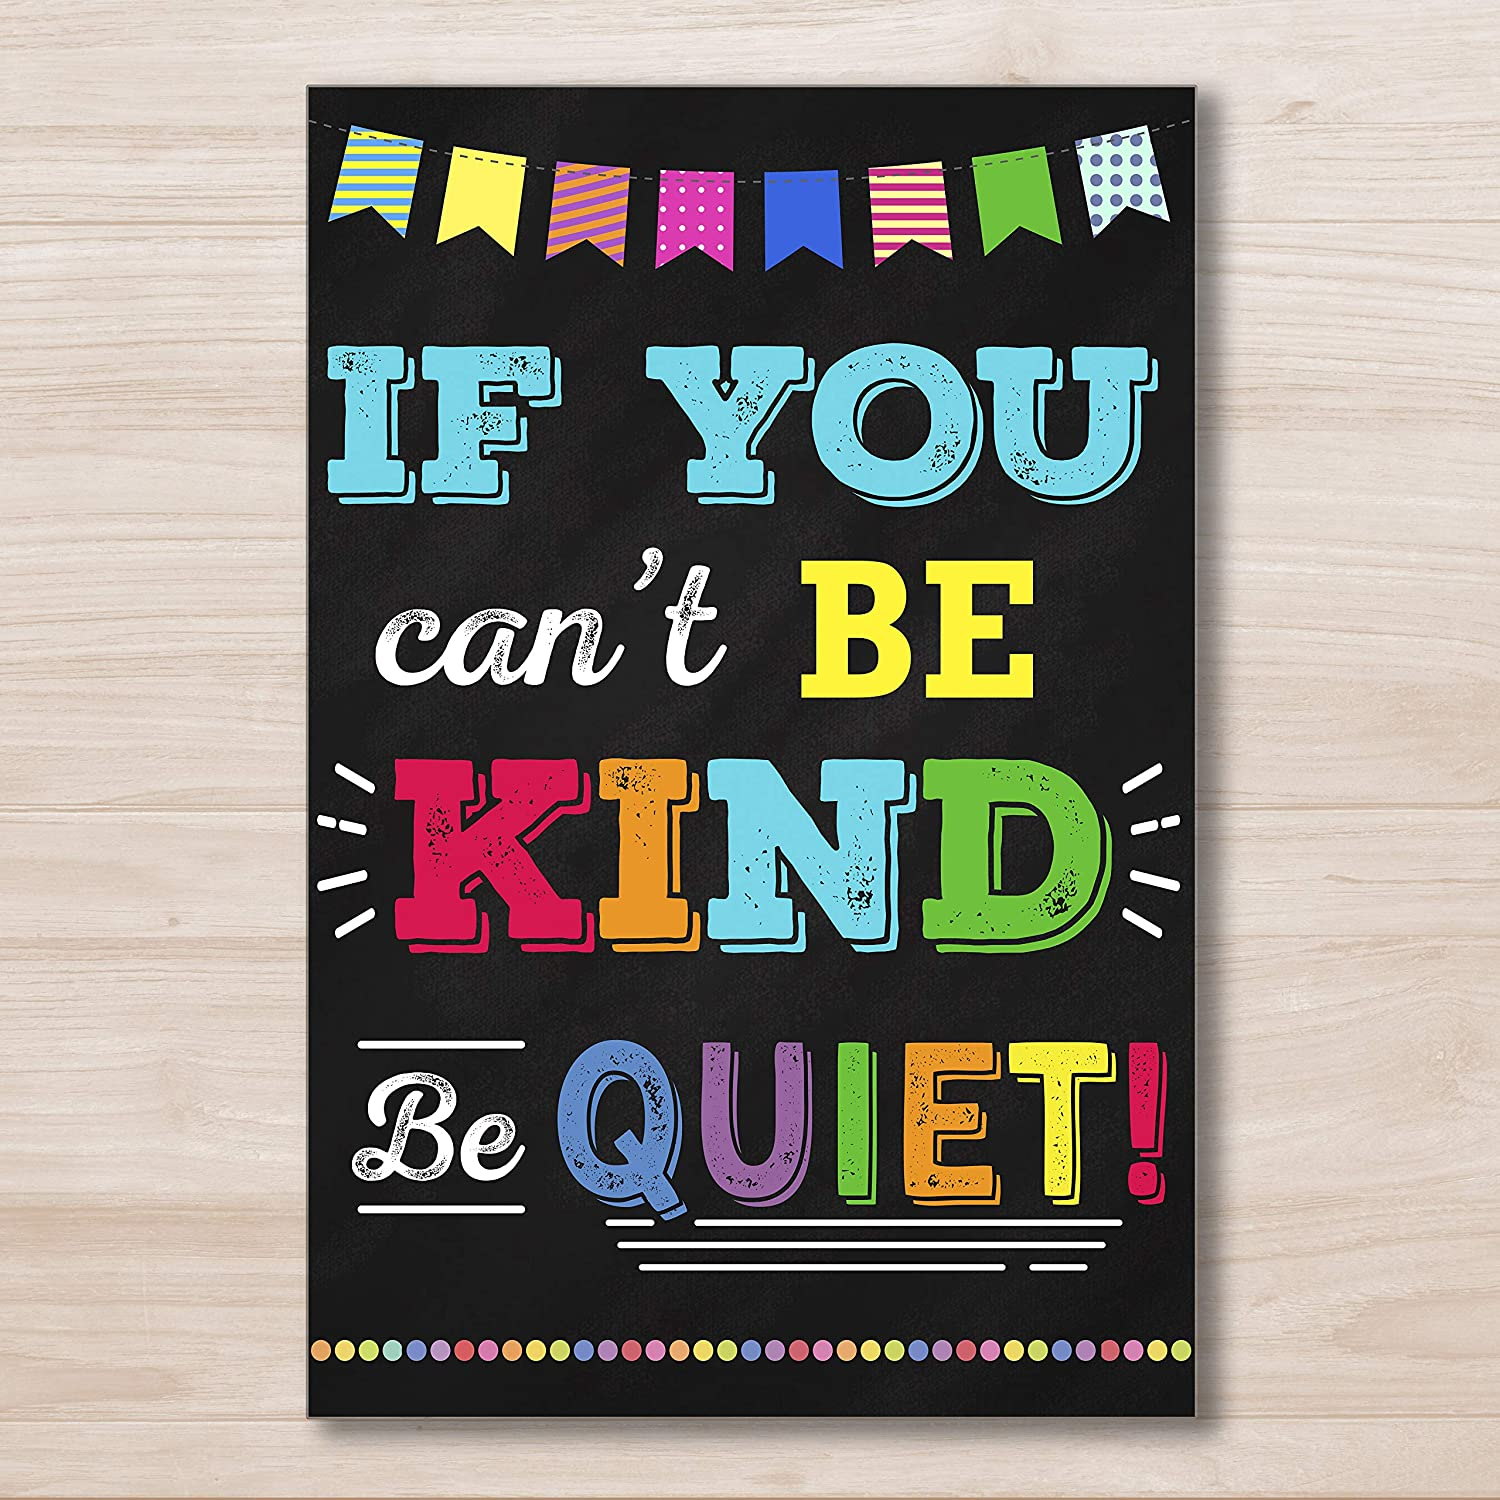 Rainbow Store 2019 If You Can't Be Kind Be Quiet Poster - School Counselor Poster - School Office Decor - Teacher Classroom Poster - Chalkboard Poster